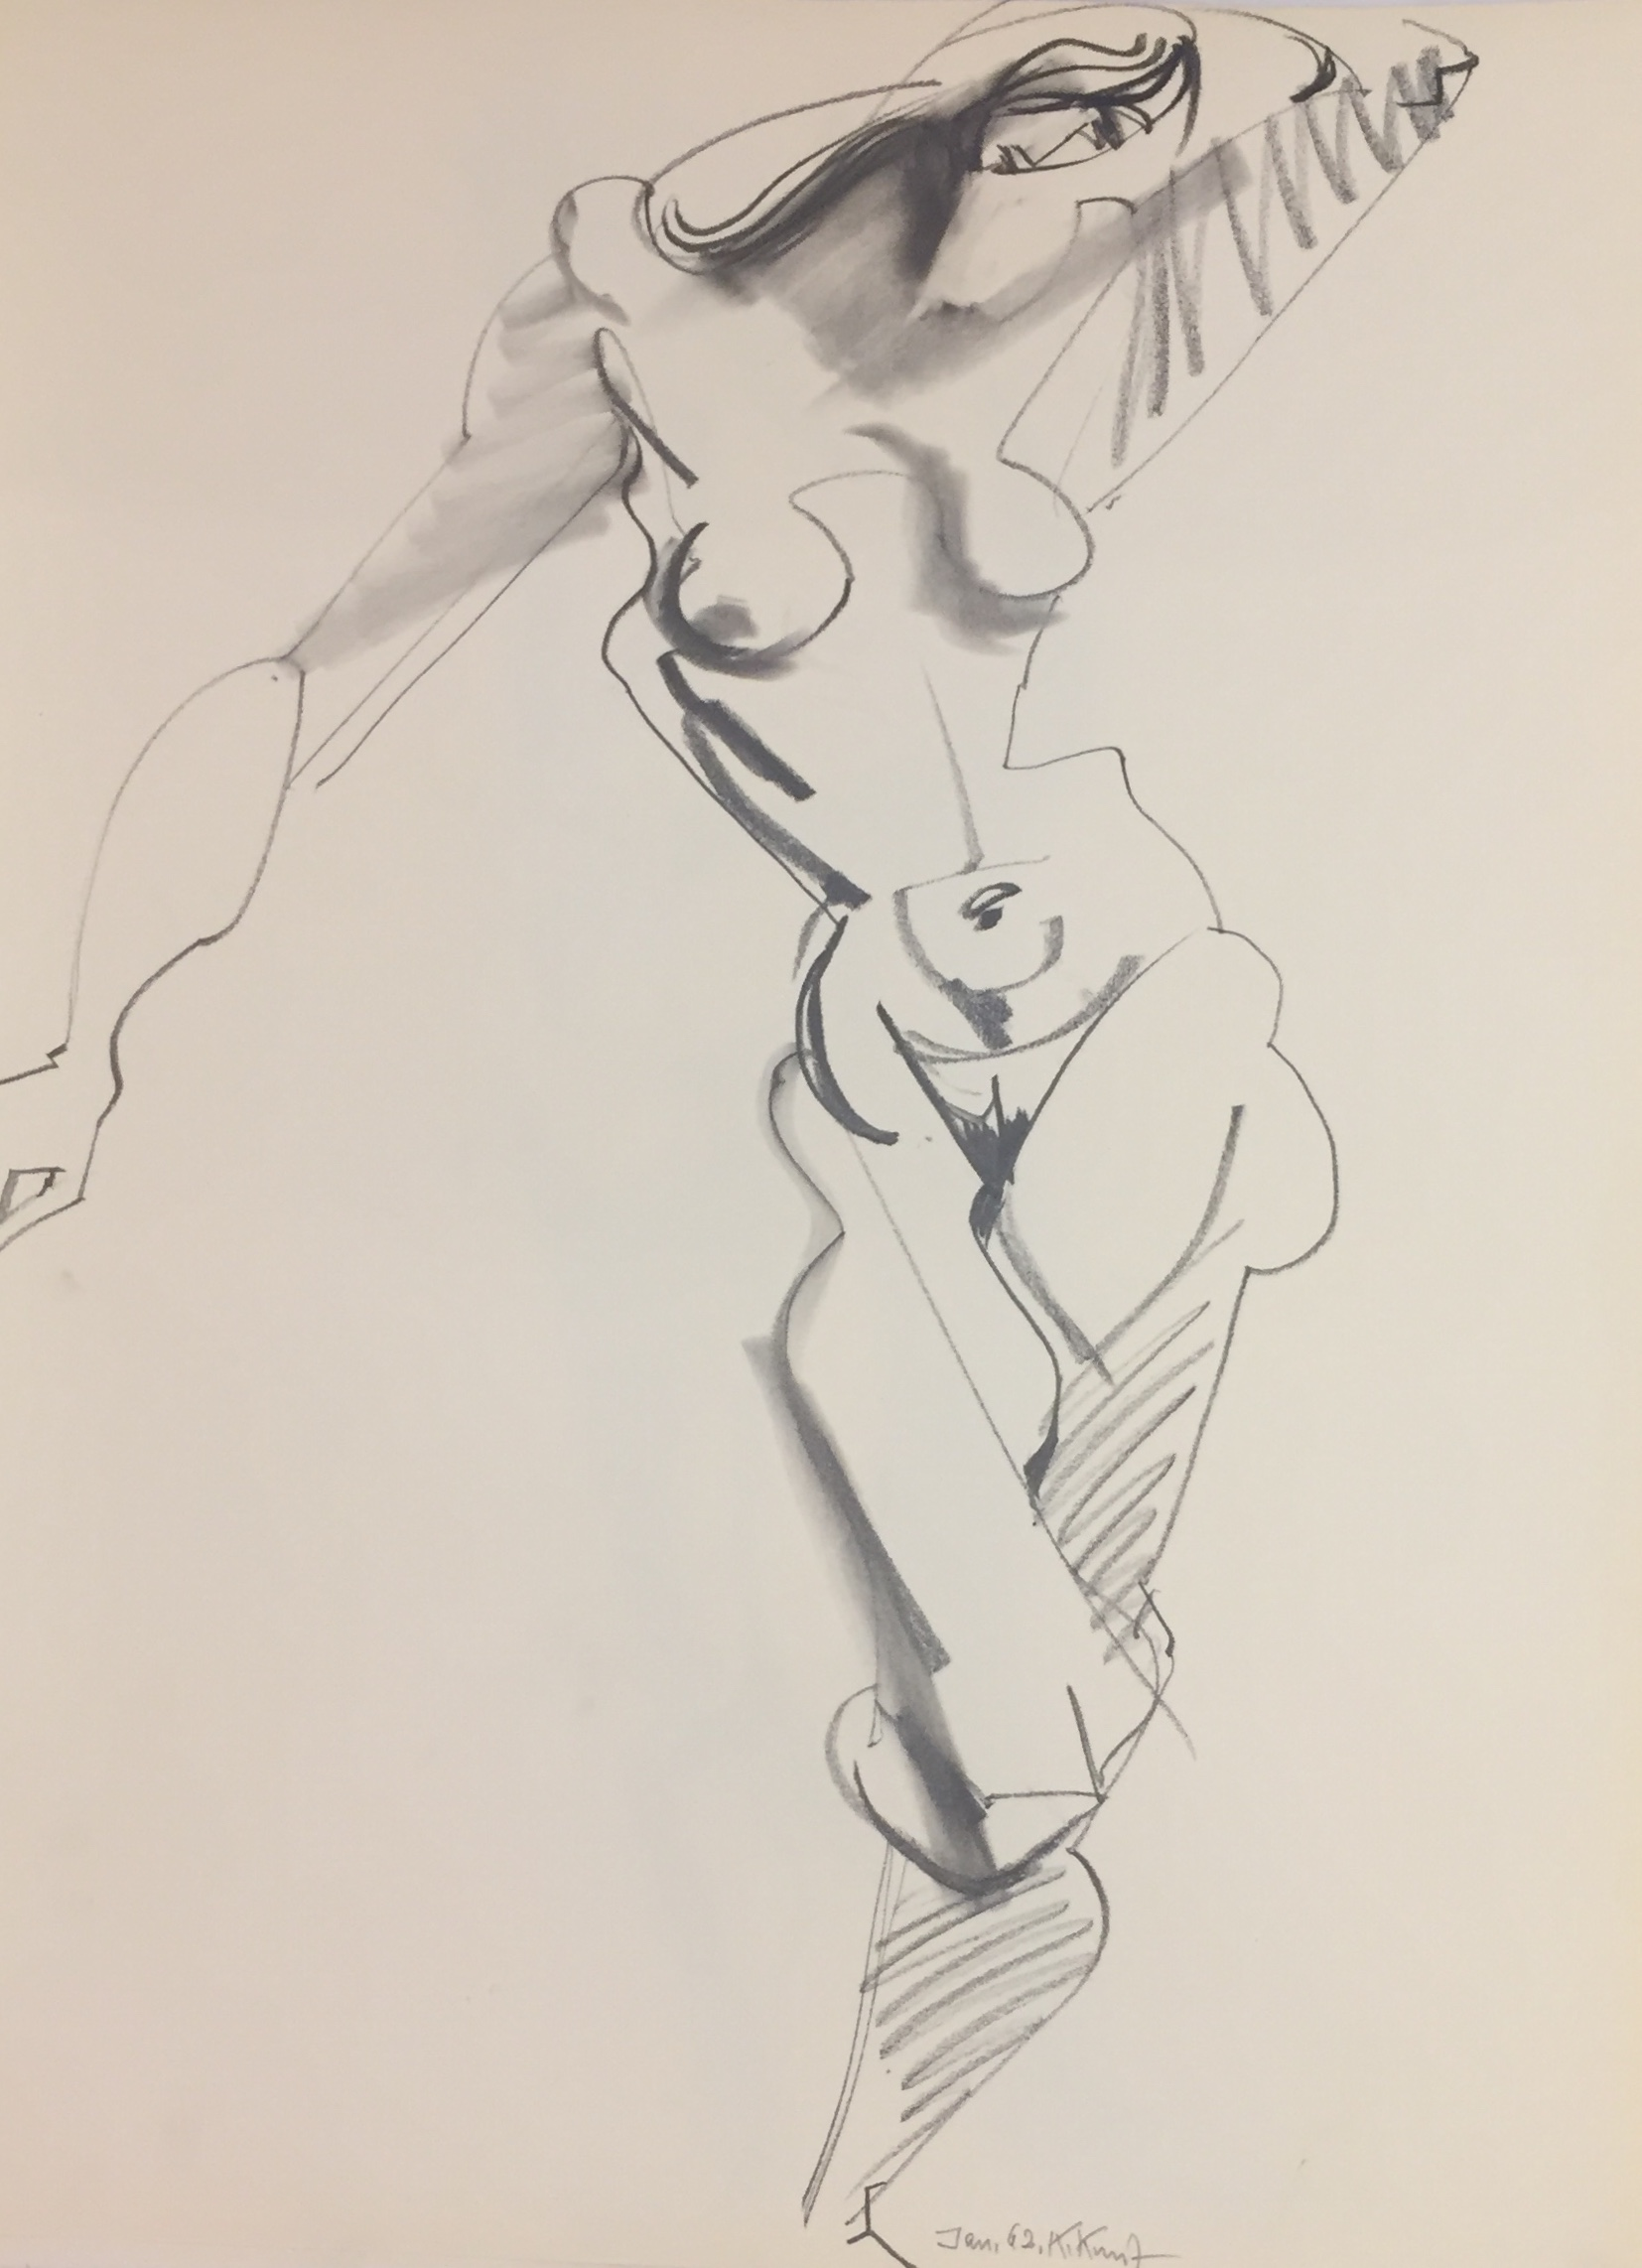 Karl Kunz | Nude | 1962 | pencil, charcoal | signed and dated | 65 x 50 cm